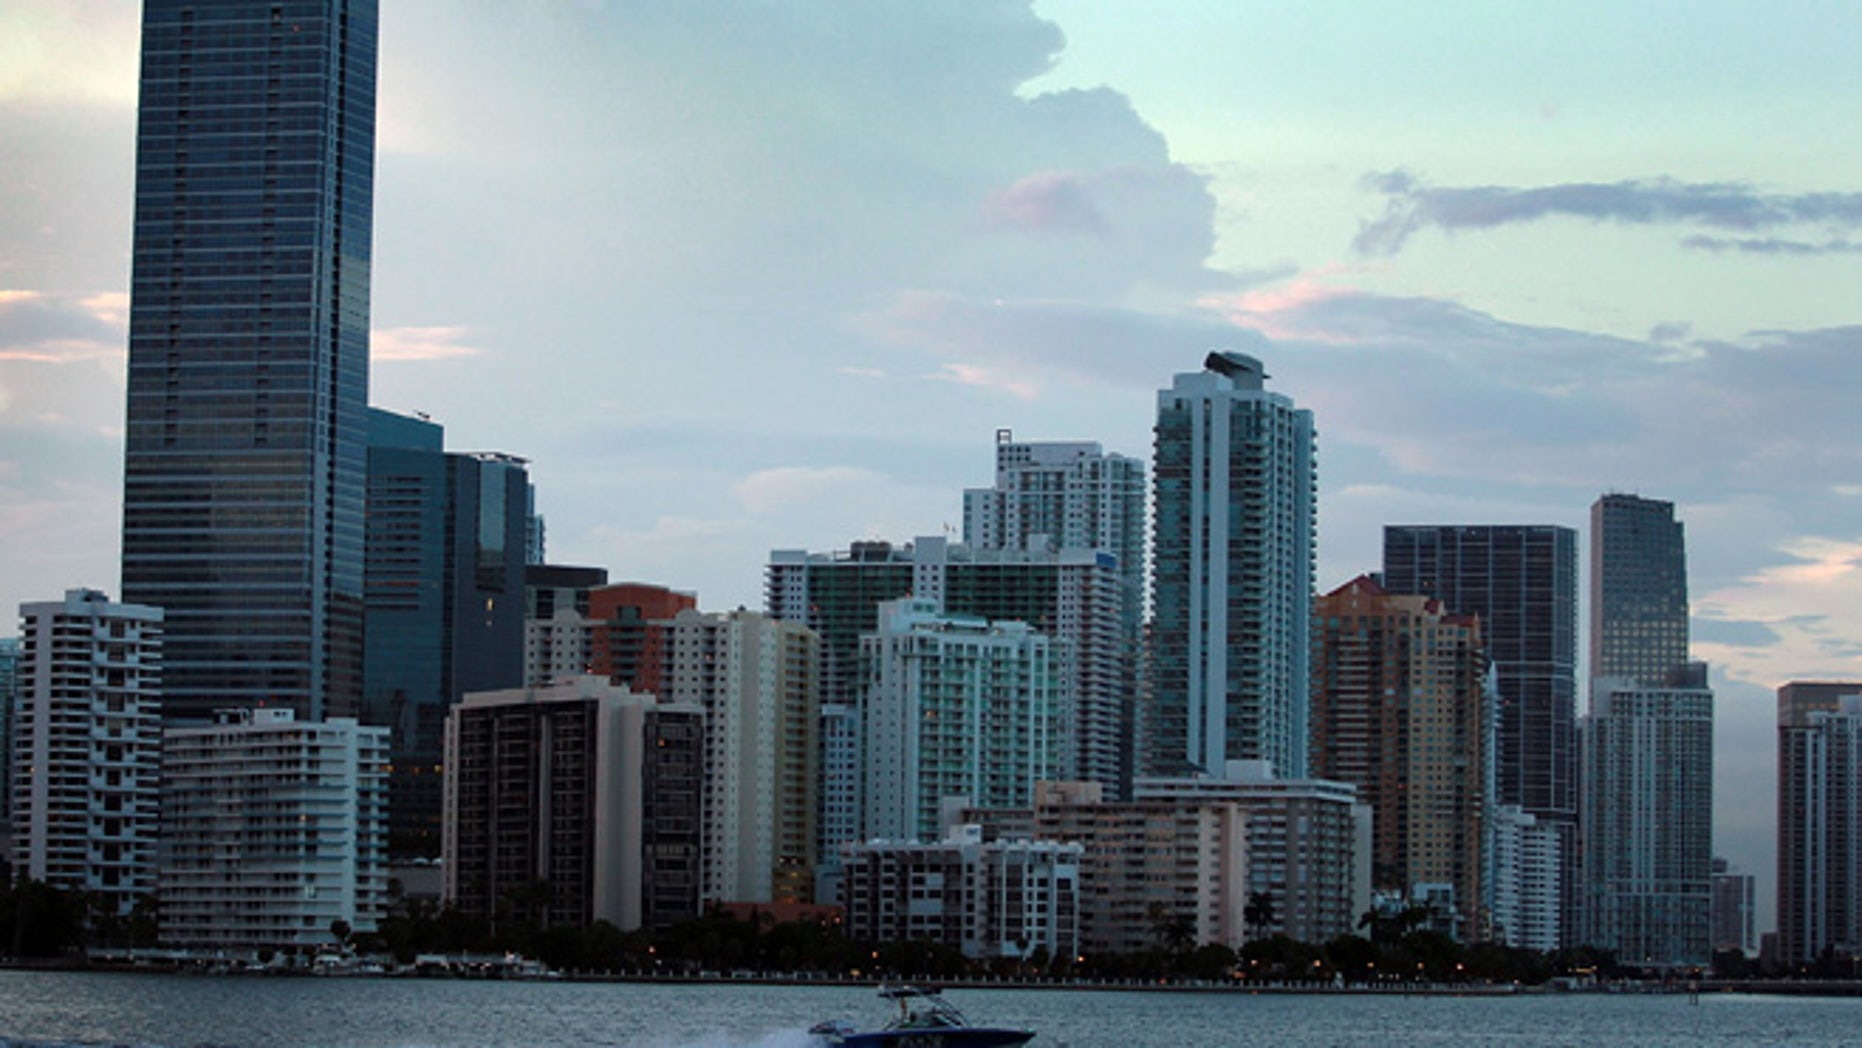 MIAMI - AUGUST 06:  The City of Miami skyline is seen on August 6, 2010 in Miami, Florida. As thousands of newly built condominium units start to fill up with new owners and tenants downtown Miami is starting to see business and activity pick up in the area.  (Photo by Joe Raedle/Getty Images)